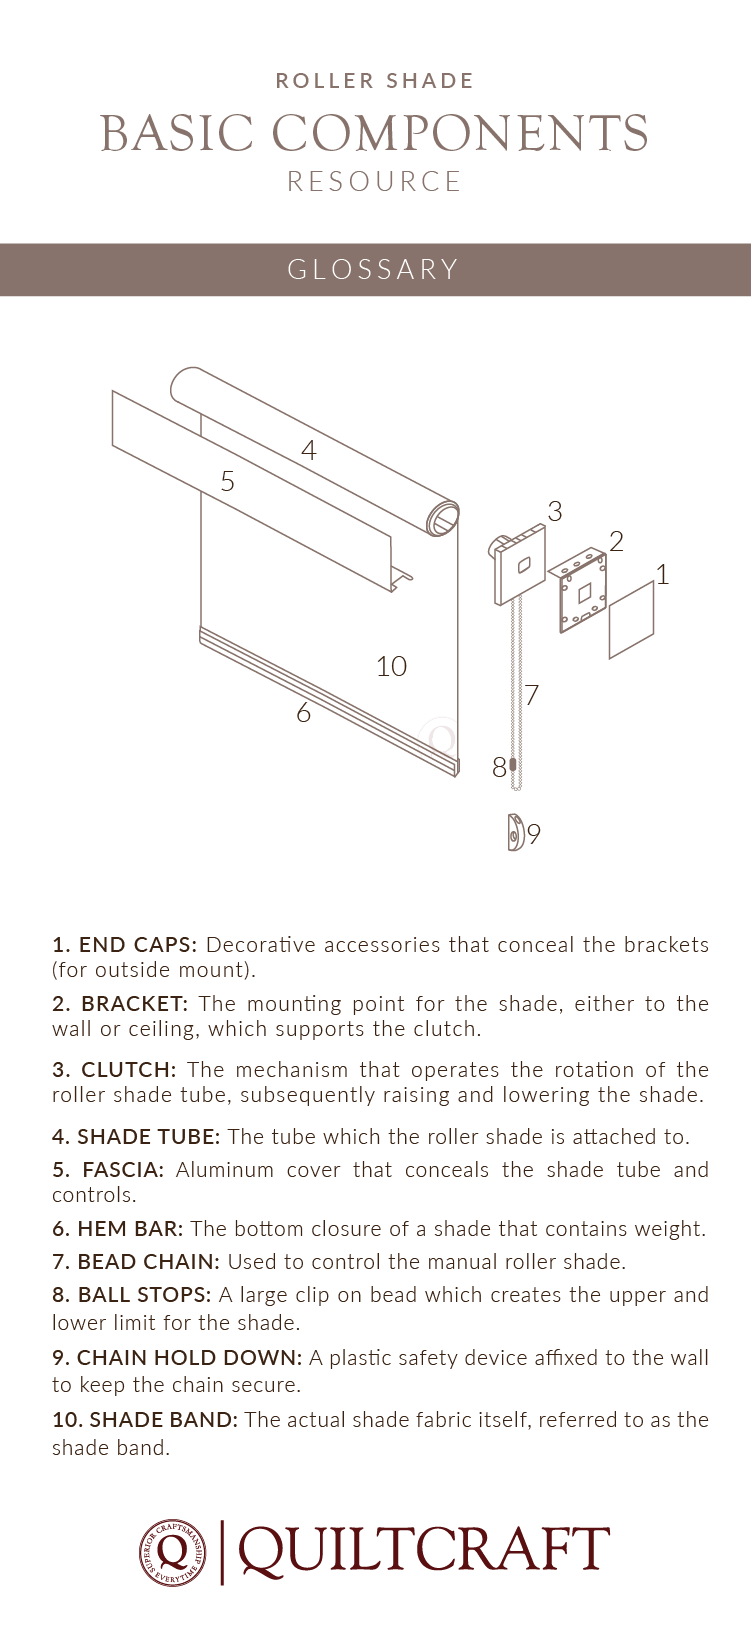 Roller Shade Glossary of basic components